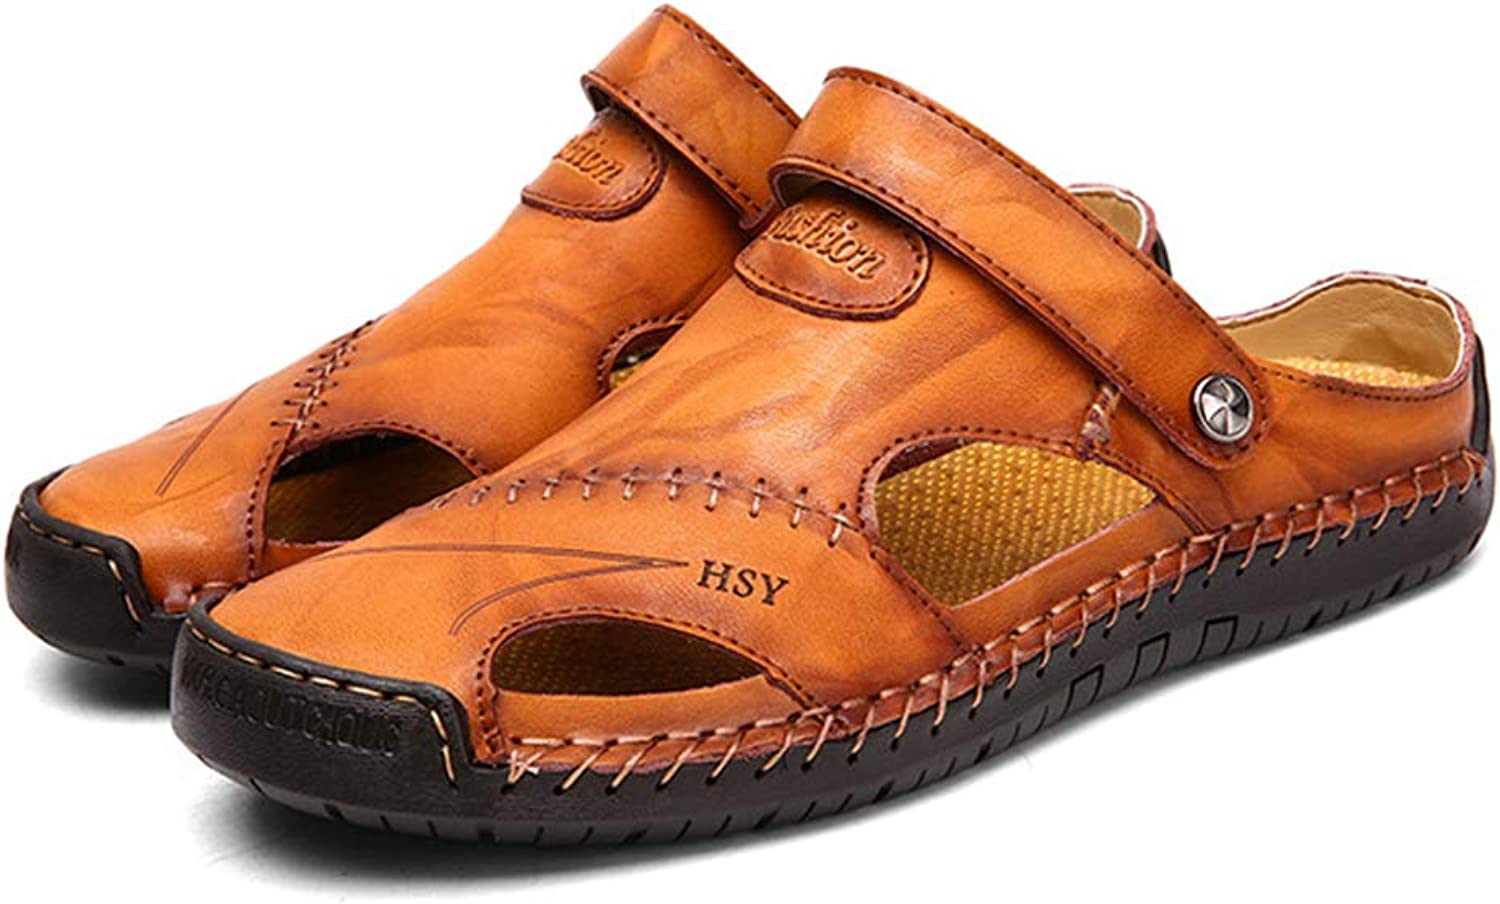 Mens Real Leather Adjustable Touch Fasten Comfort Closed Toe Slippers Gladiator Summer Non-Slip Sandals shoes Size 38-47